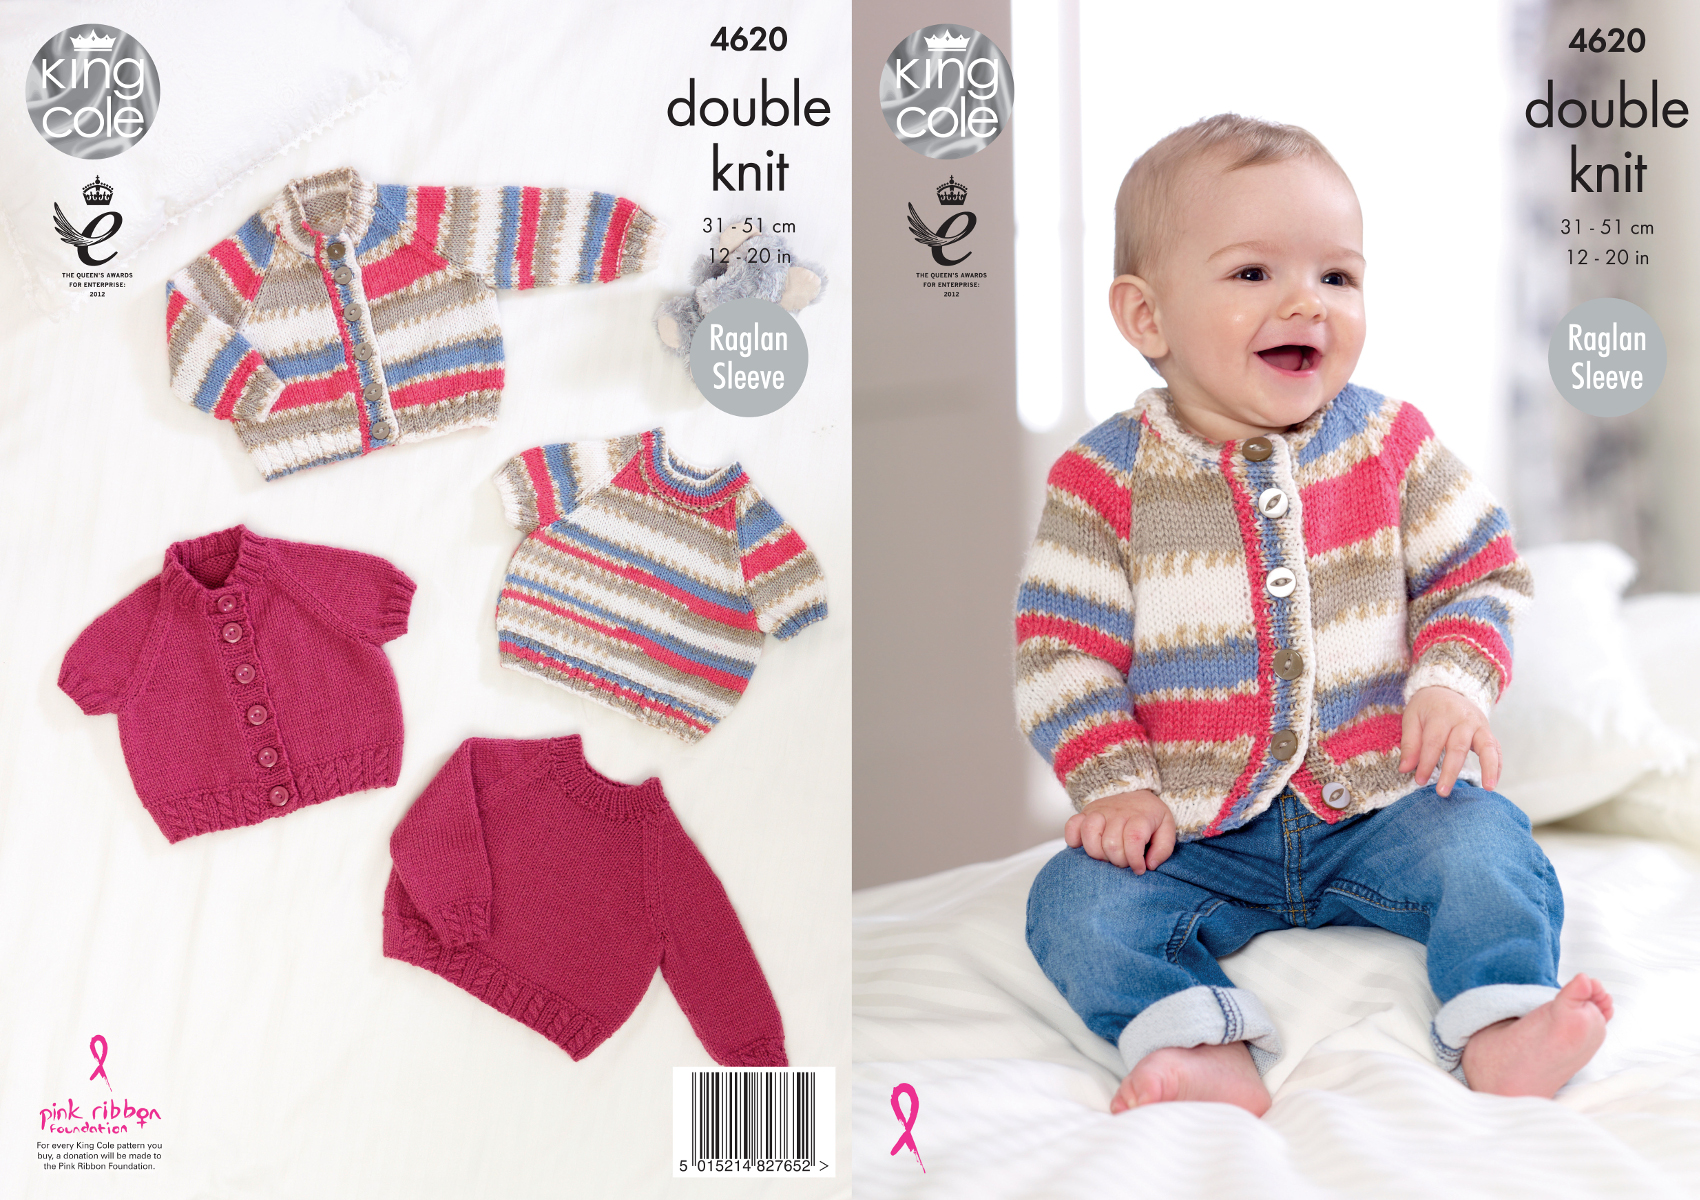 Knitting Pattern Raglan Sleeve Baby Cardigan : King Cole Baby Double Knitting Pattern Raglan Sleeve ...